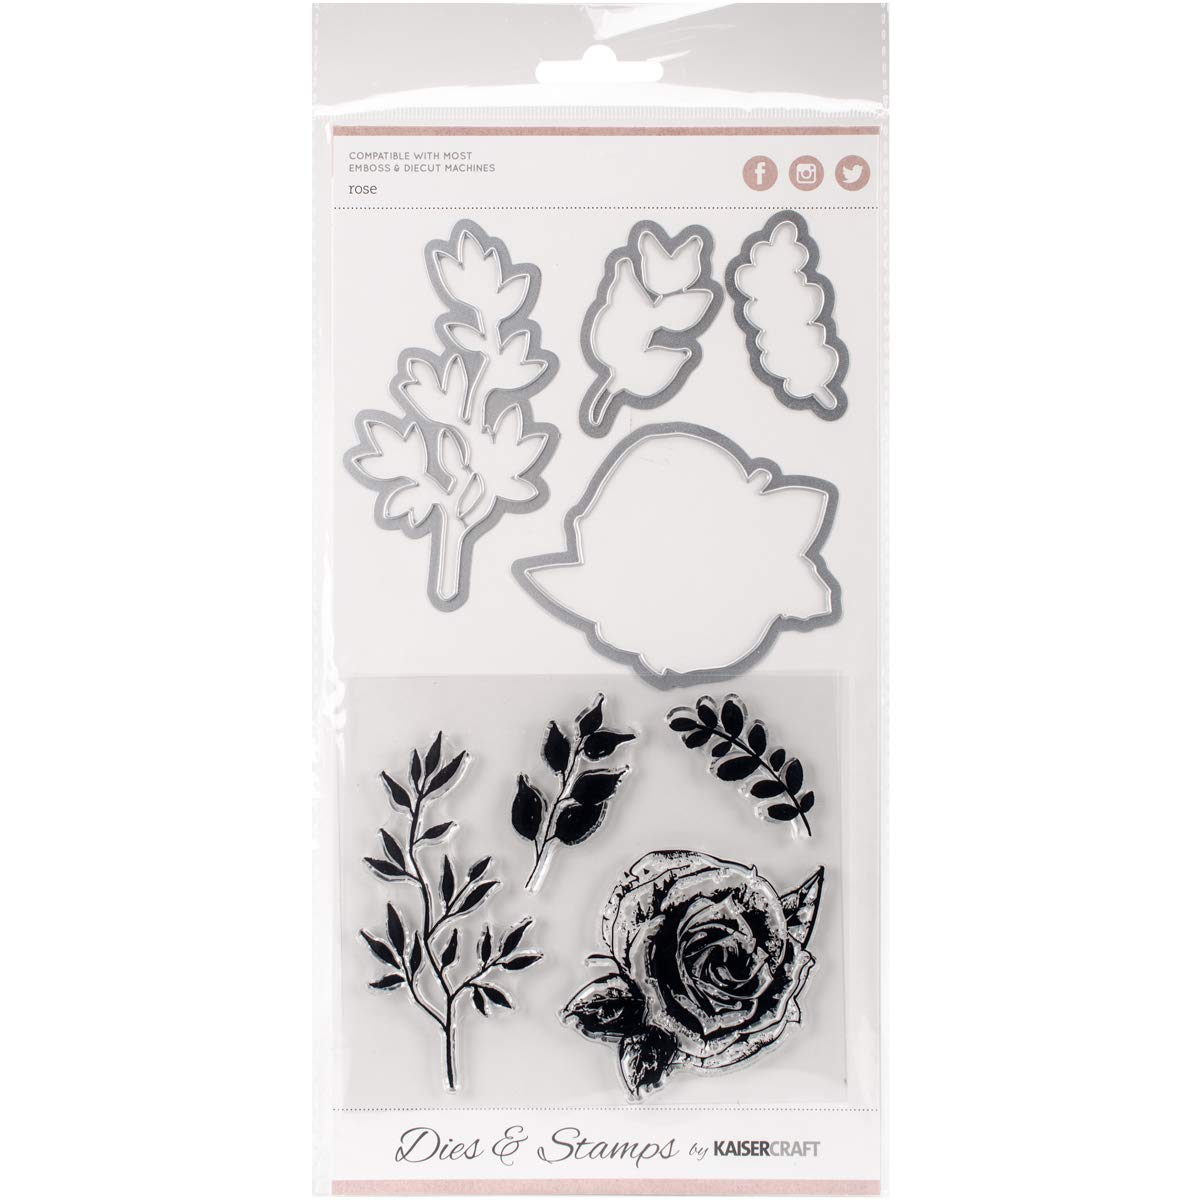 Kaiser Craft Decorative Dies and Clear Acrylic Stamps Rose (8 Pack)